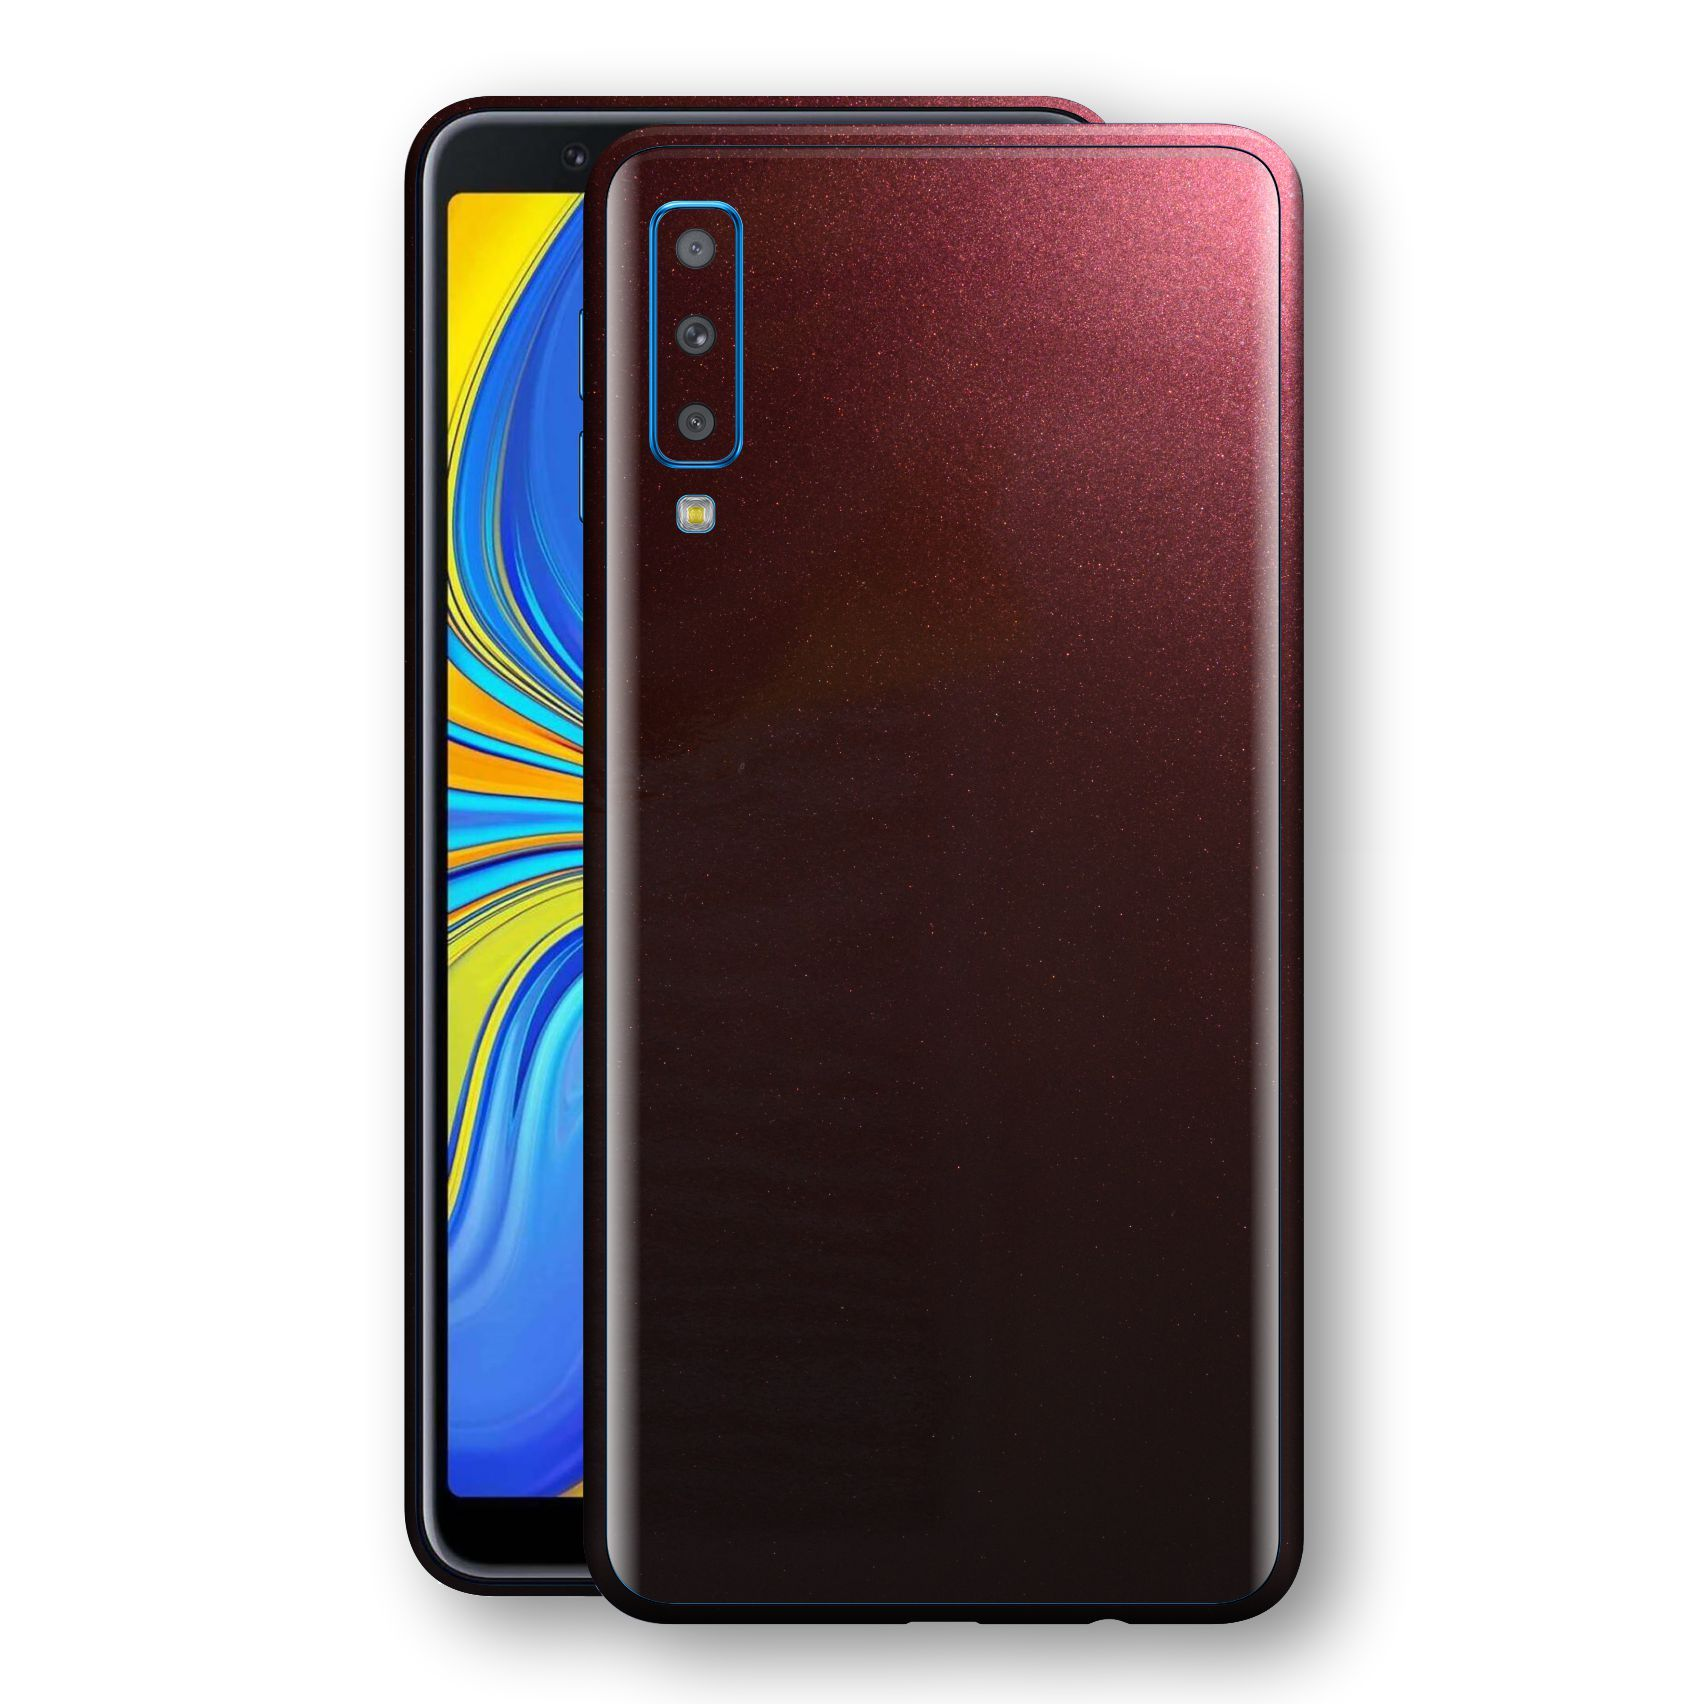 Samsung Galaxy A7 (2018) Black Rose Glossy Metallic Skin, Decal, Wrap, Protector, Cover by EasySkinz | EasySkinz.com